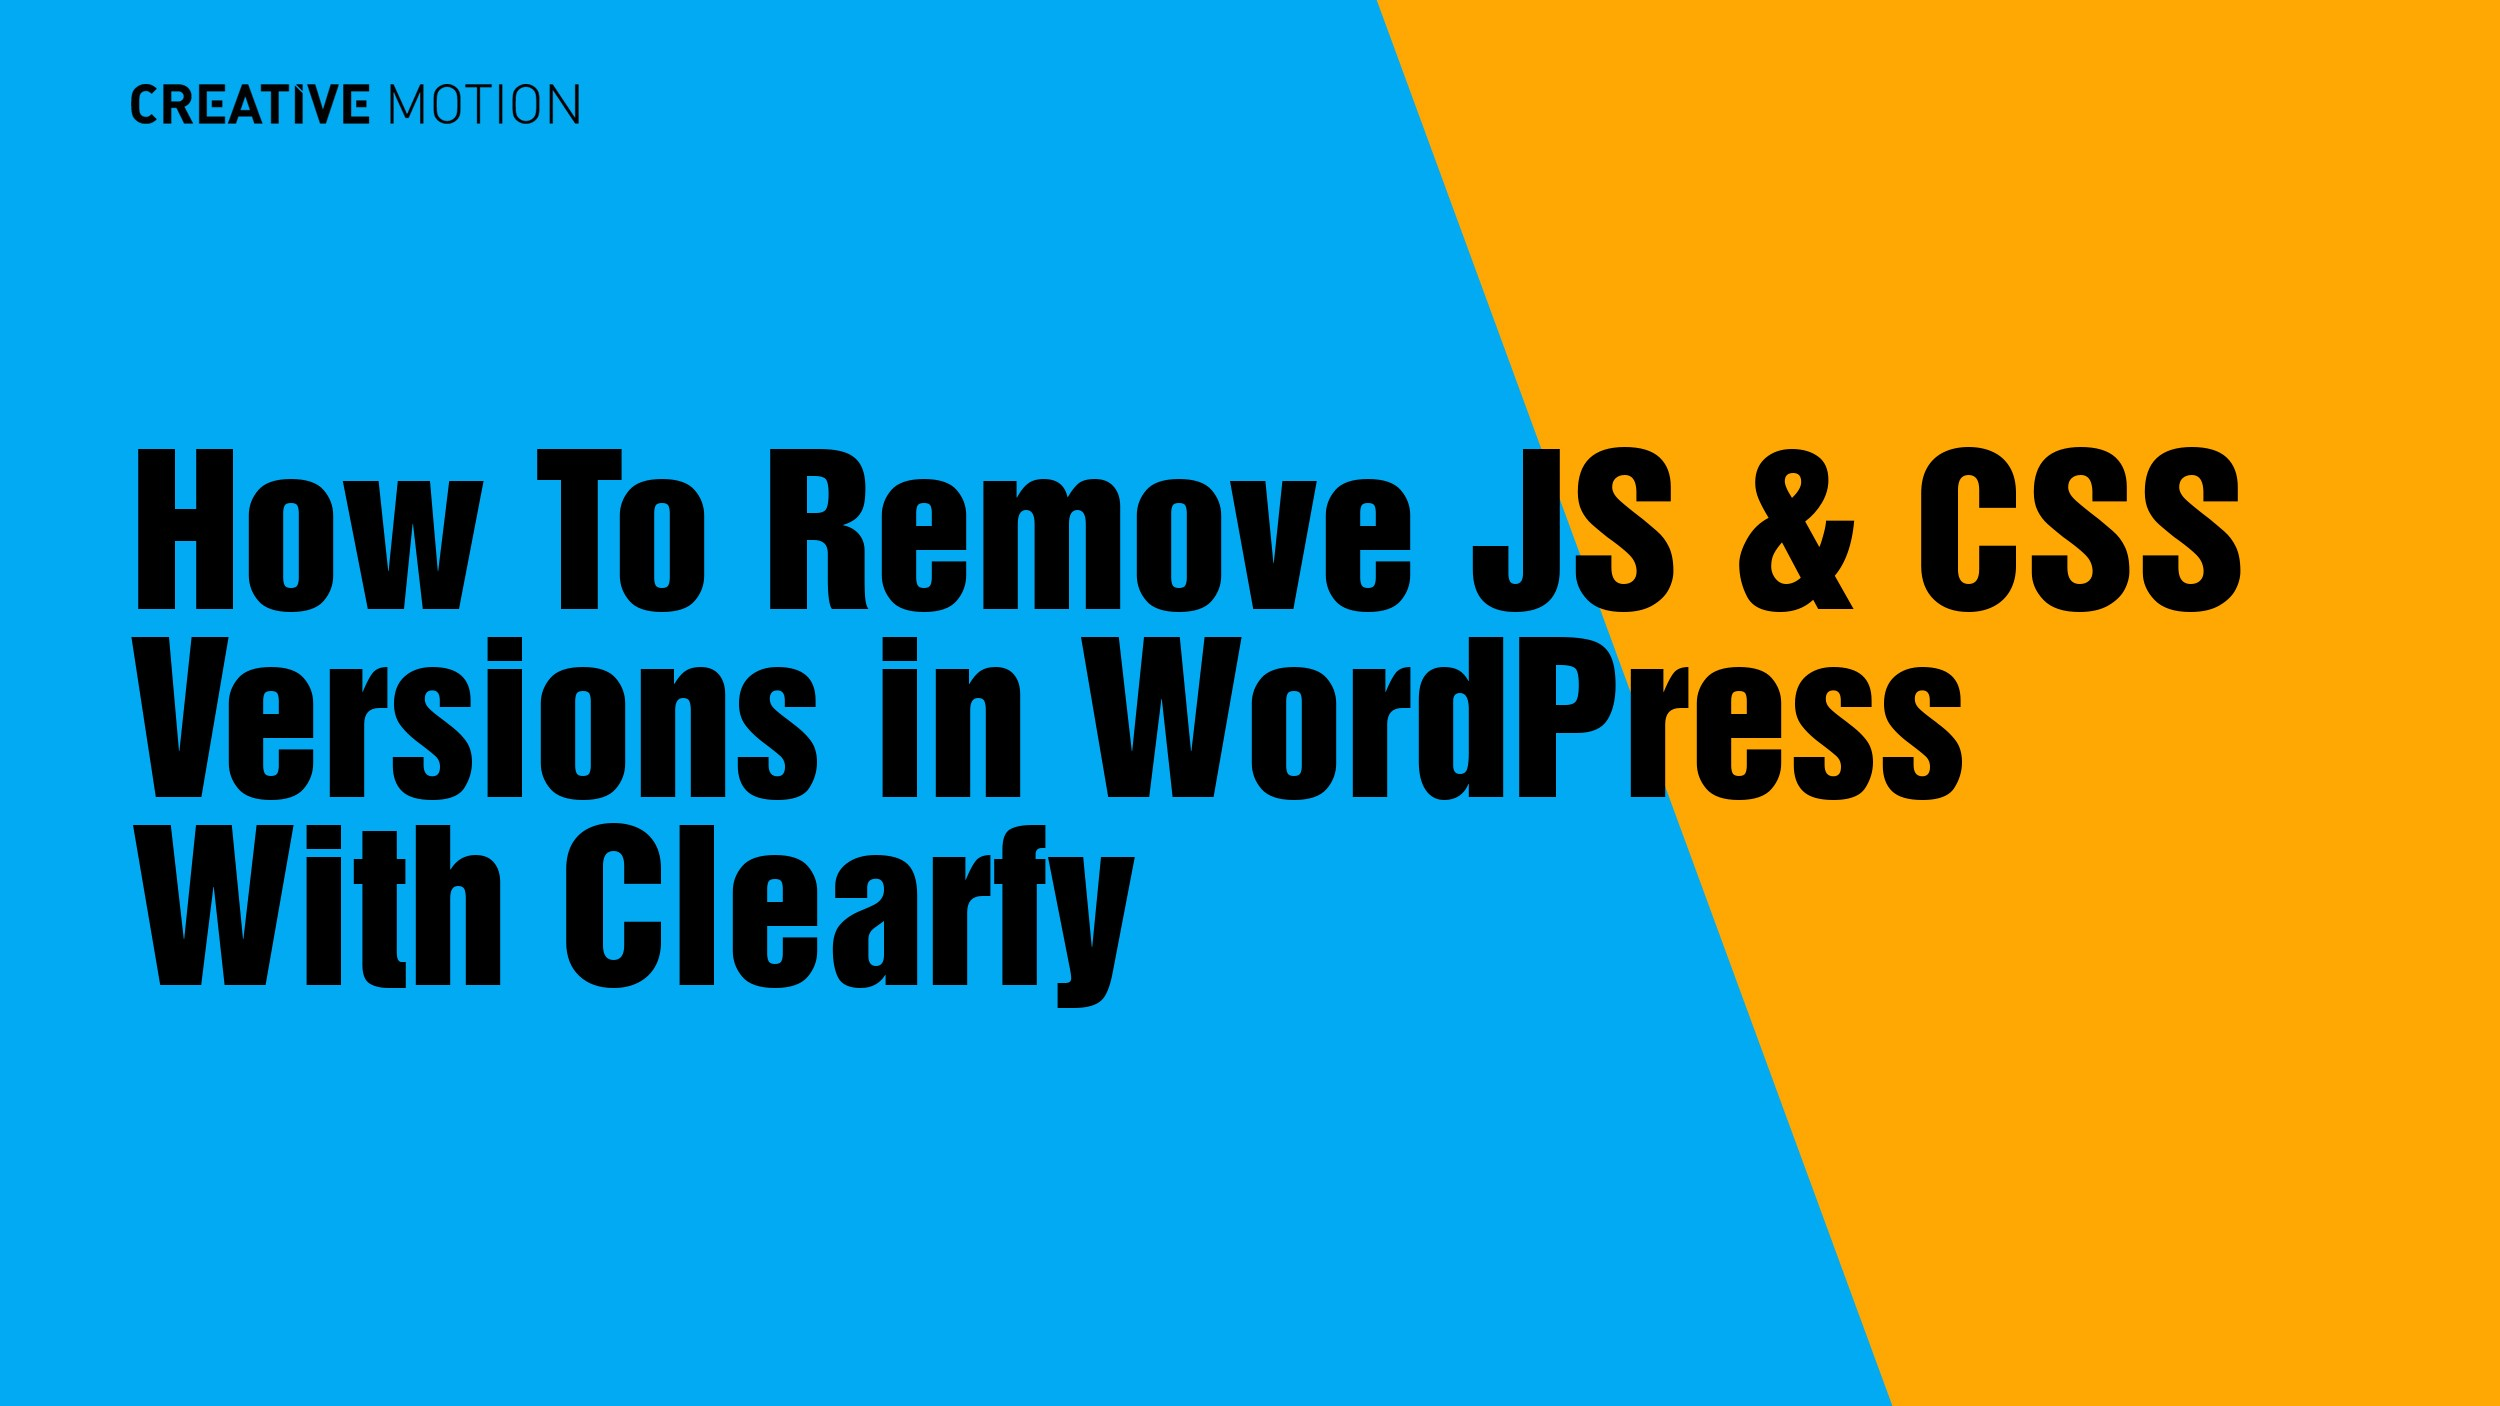 How To Remove JS & CSS Versions in WordPress With Clearfy